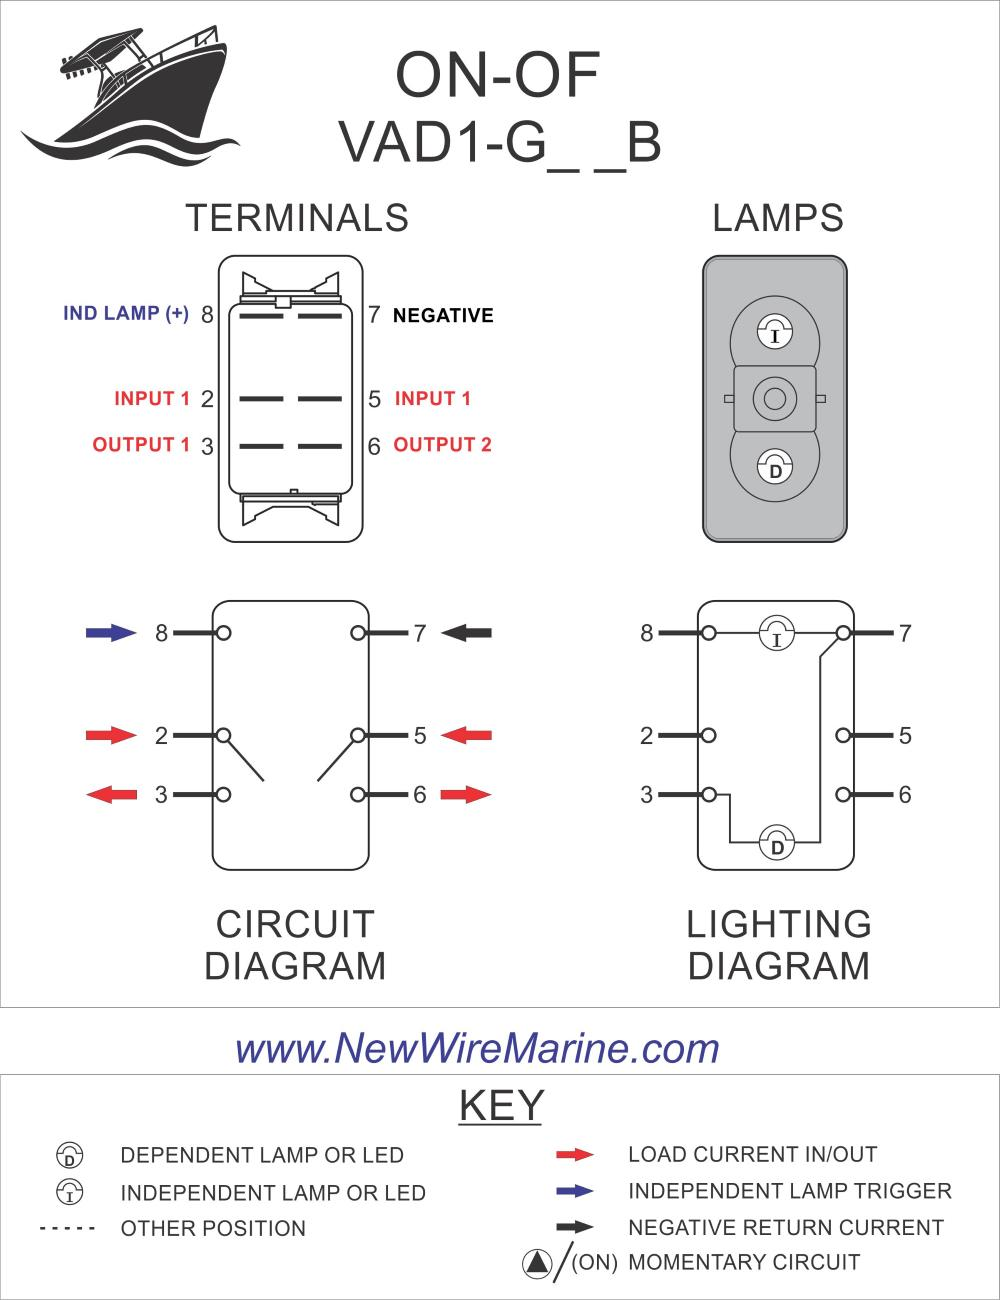 Carling Switch Wiring Diagrams : carling, switch, wiring, diagrams, Double, Rocker, Switch, ON-OFF, Illuminated